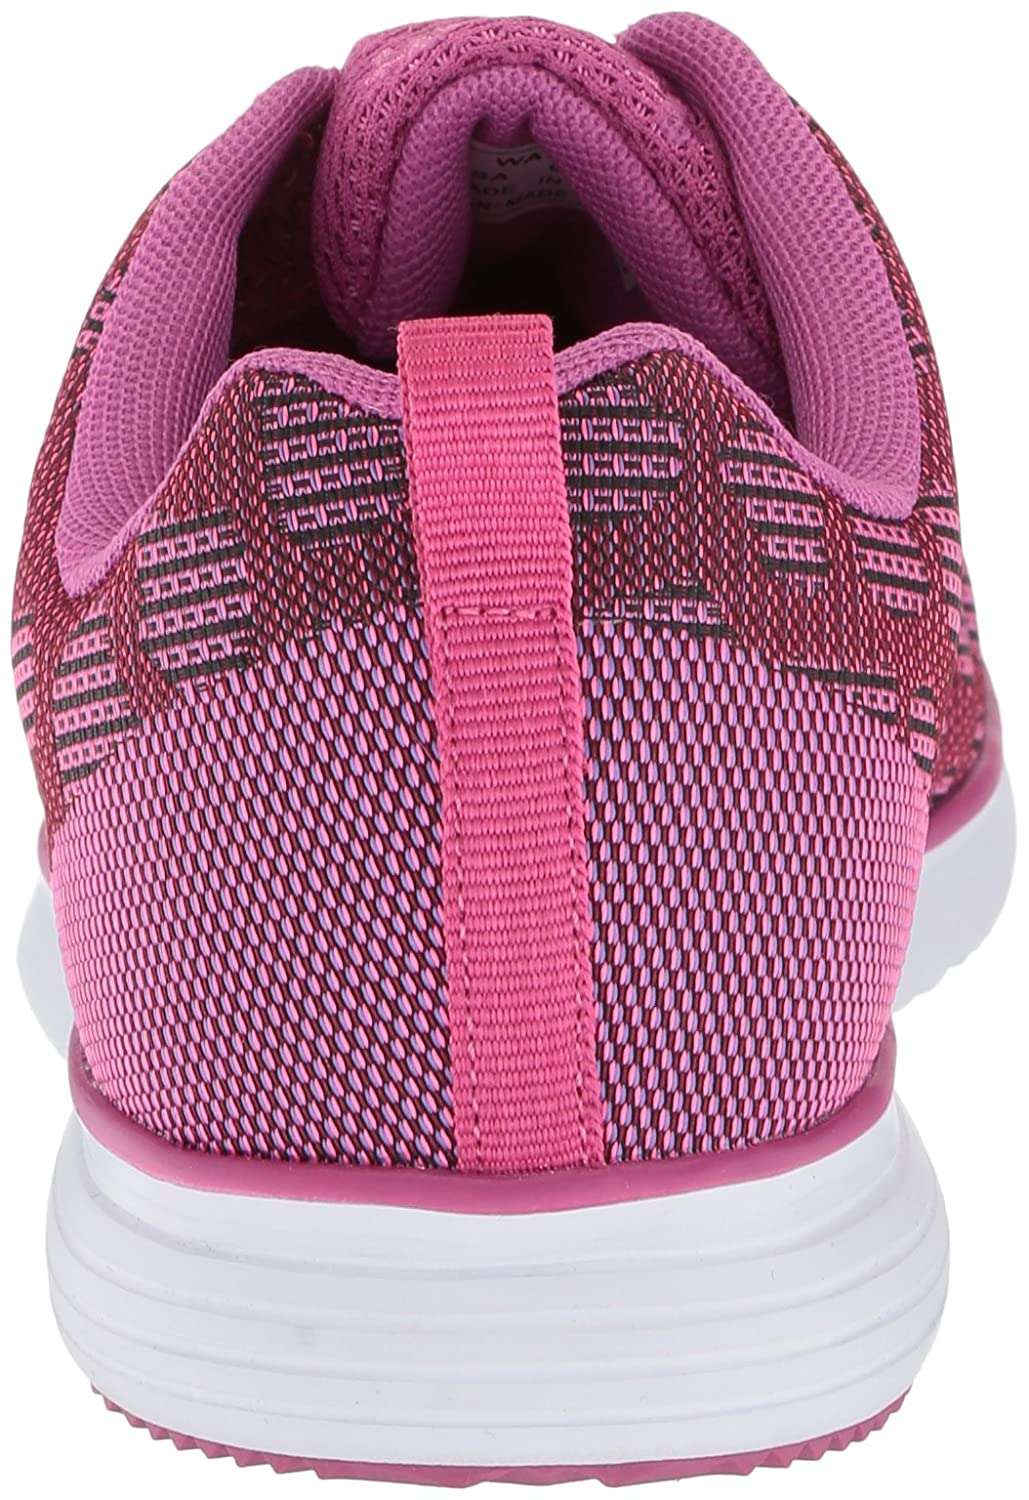 Propét B073DNMDNQ Women's TravelFit Walking Shoe B073DNMDNQ Propét 9.5 N US|Berry 62c2b5